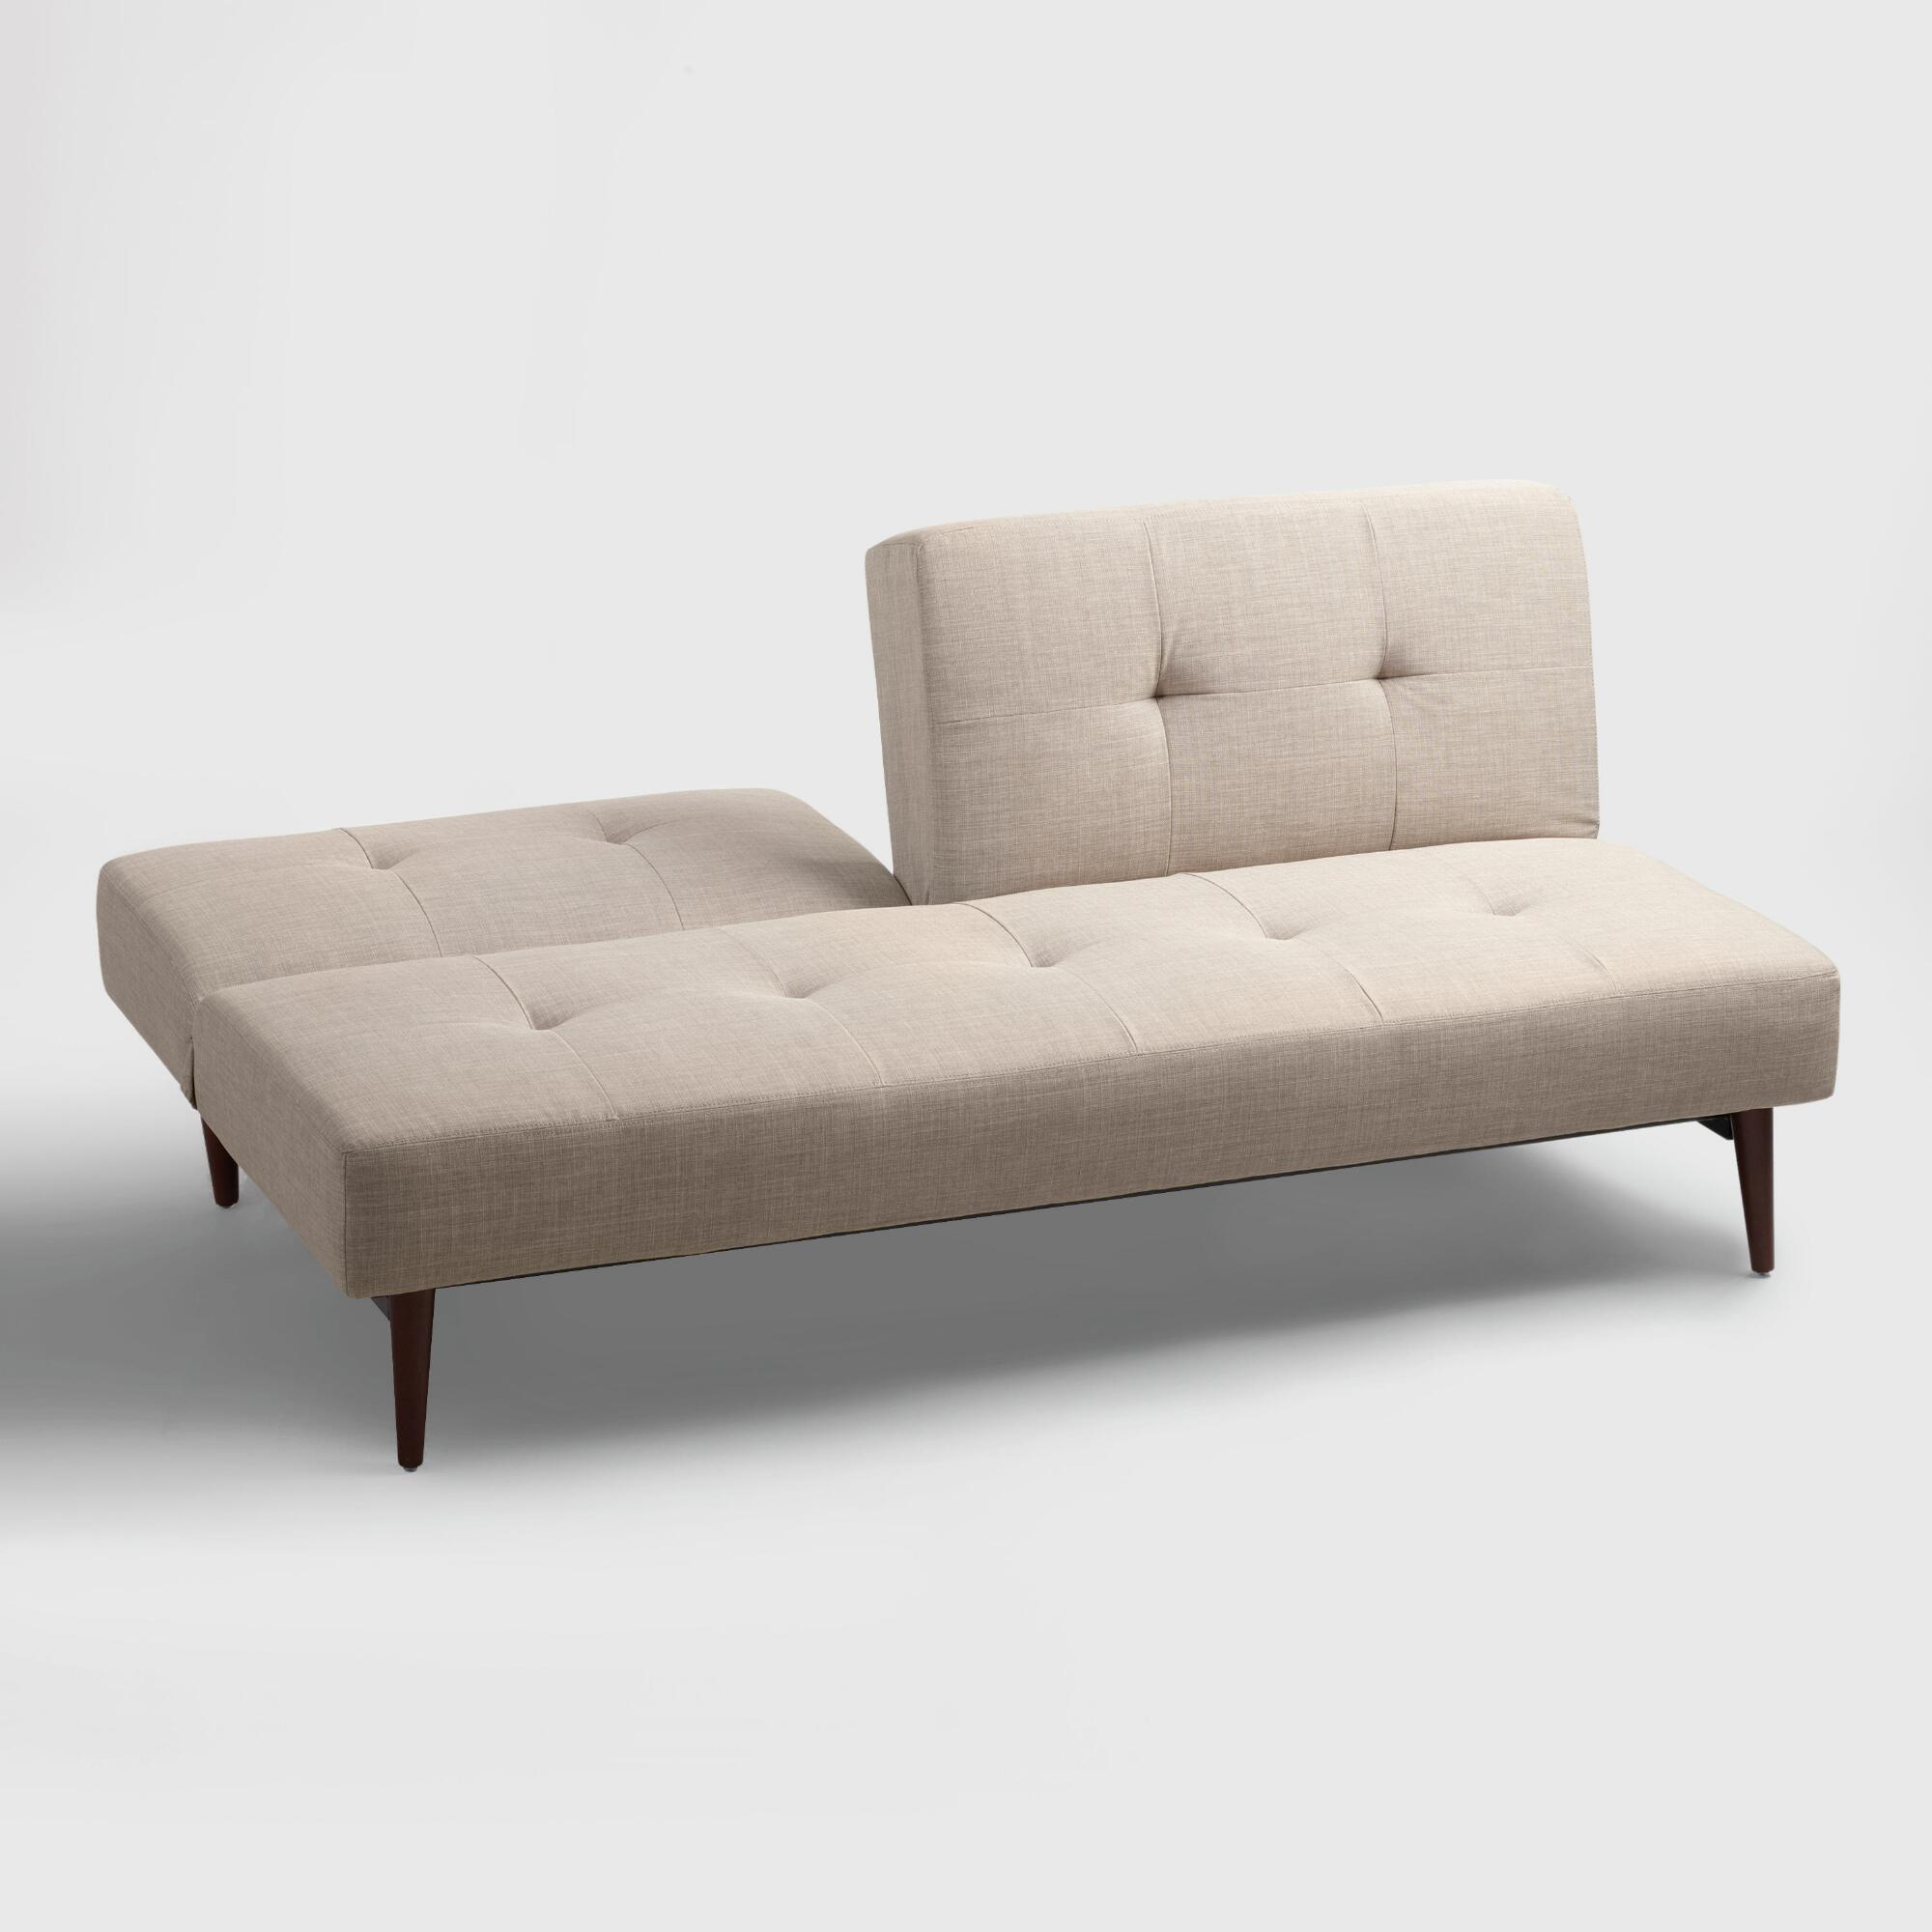 sofa living reviews in oakland click handy reclining futon ca furniture clack bed wayfair pdp velvet